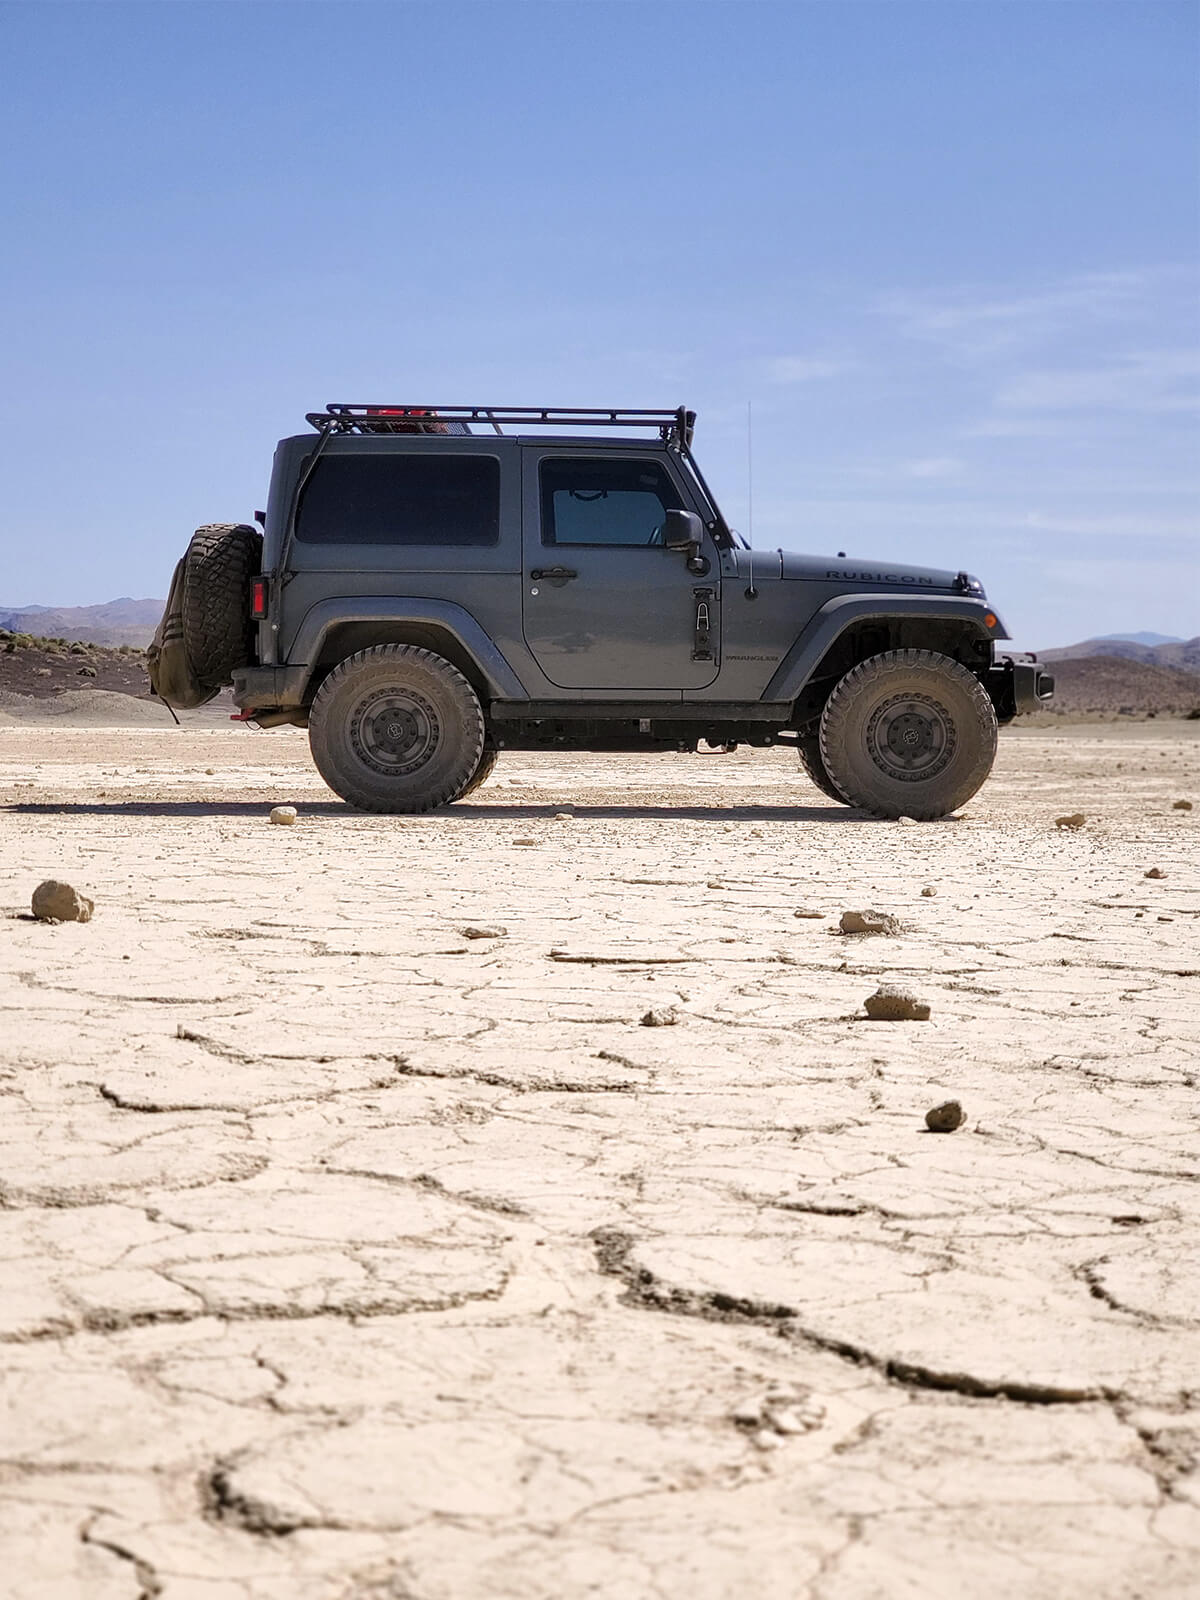 Lifted Jeep wrangler with offroad mods in Baja desert